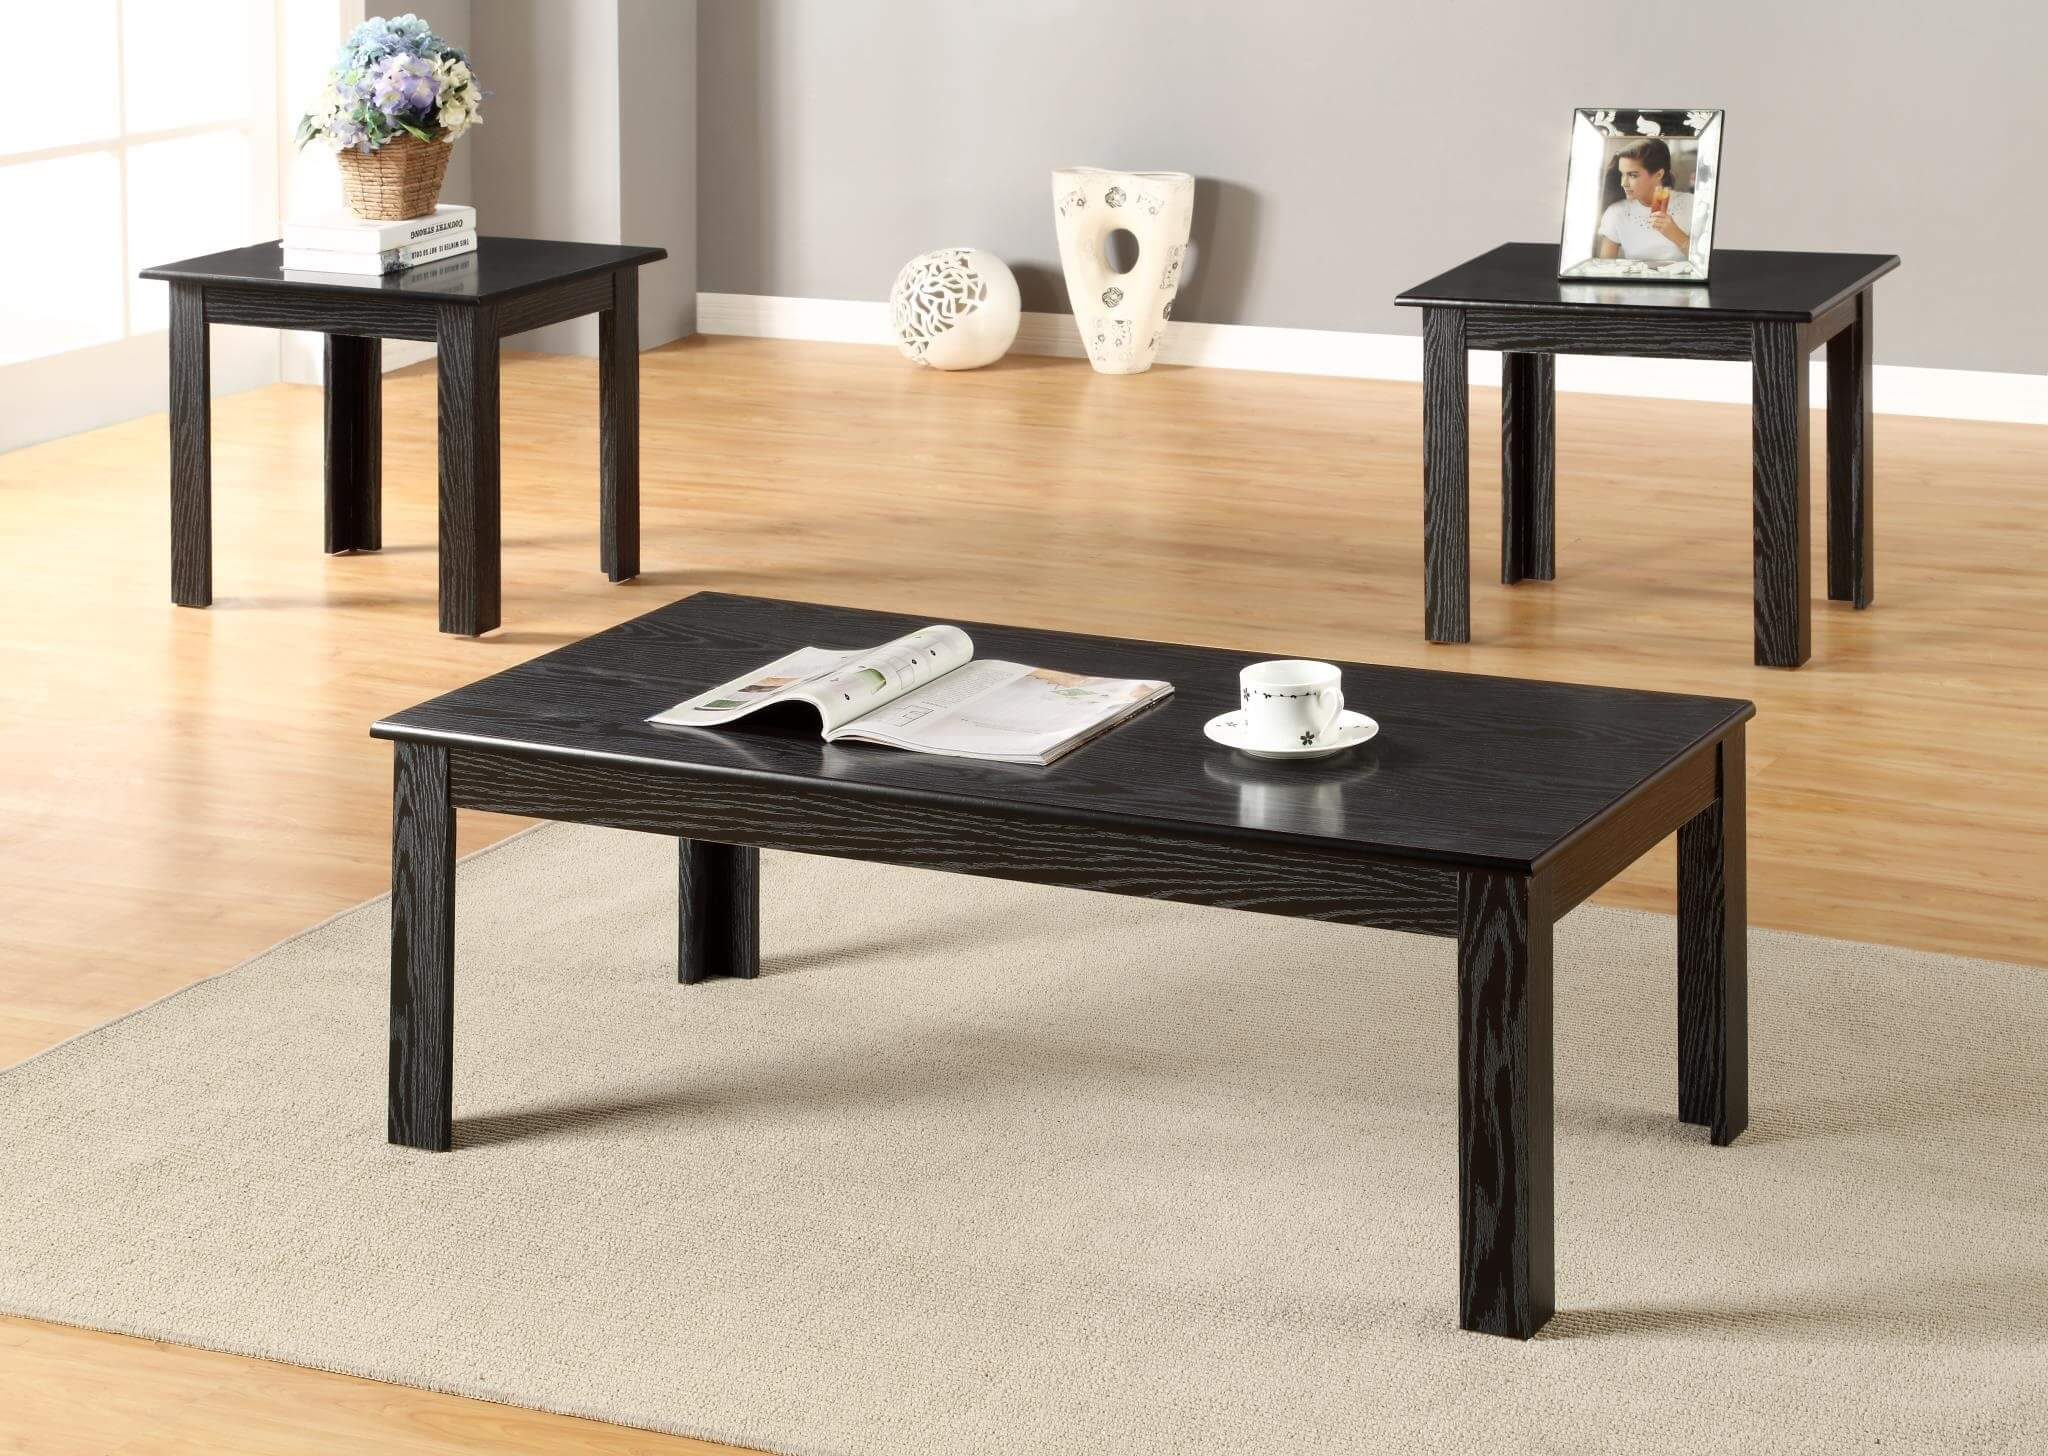 3 Piece Black Coffee And End Table Set Occasional Tables